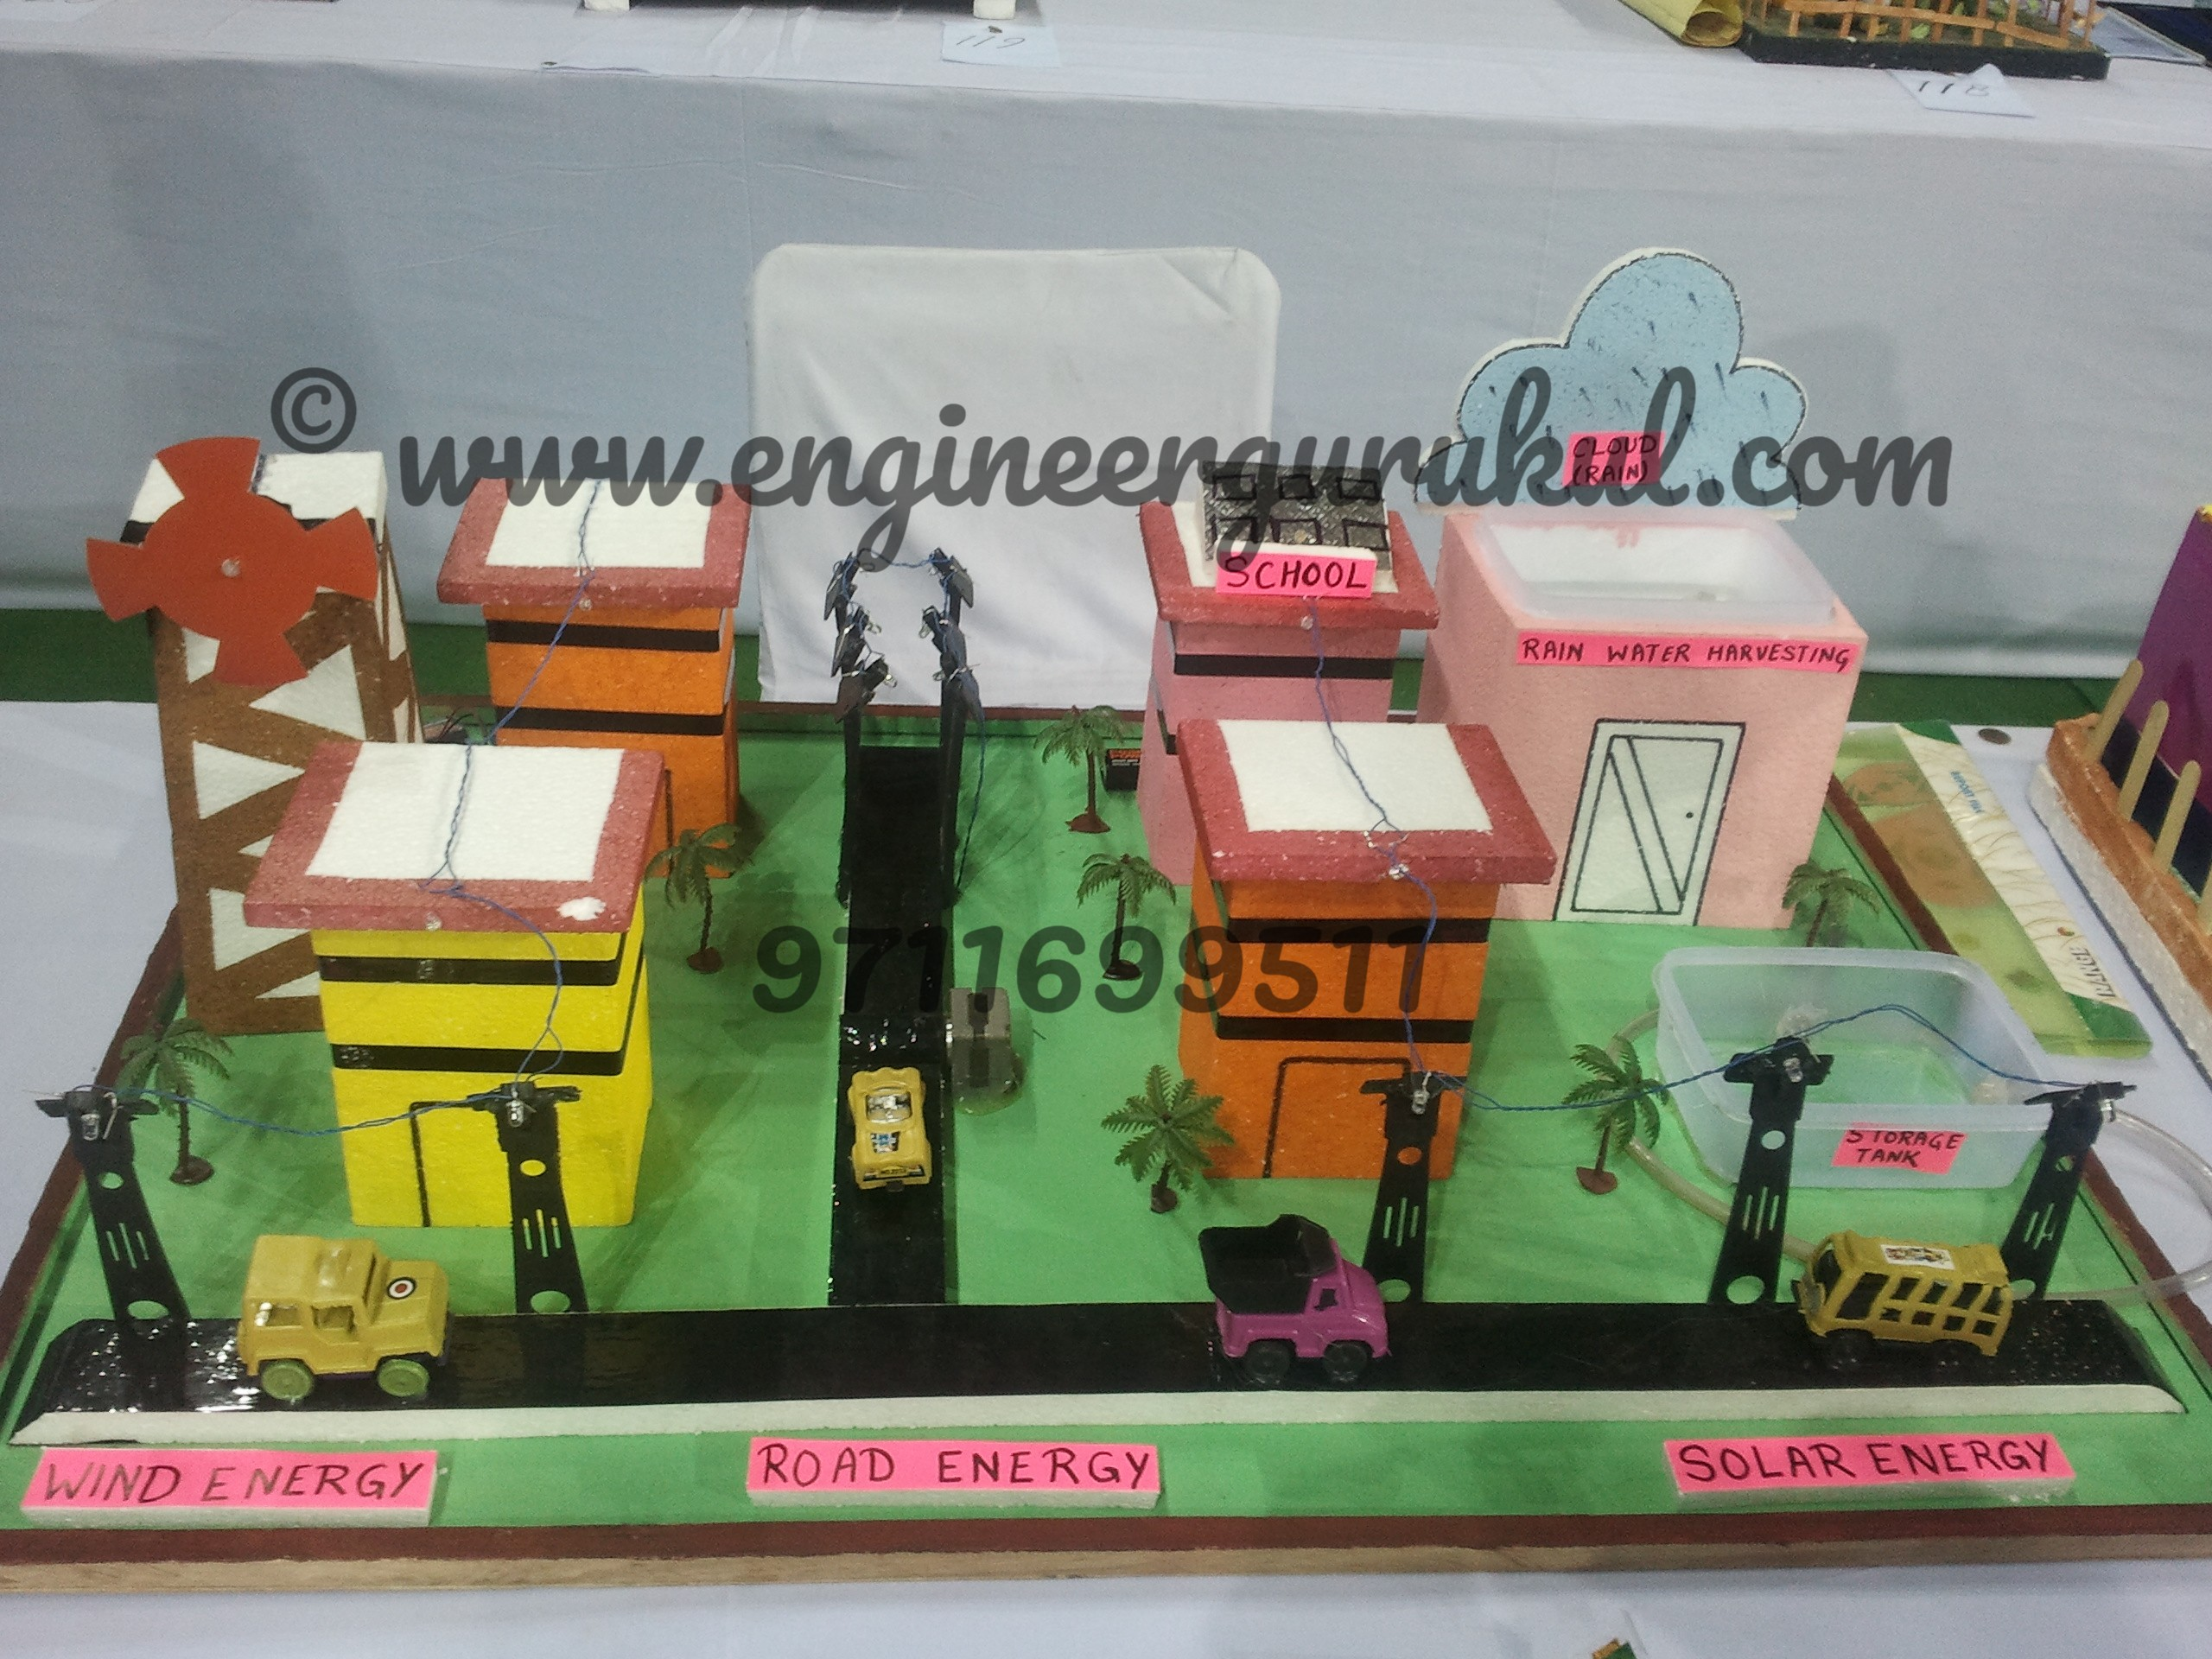 Science Fair Projects Ideas | Gurukul Technical Institute